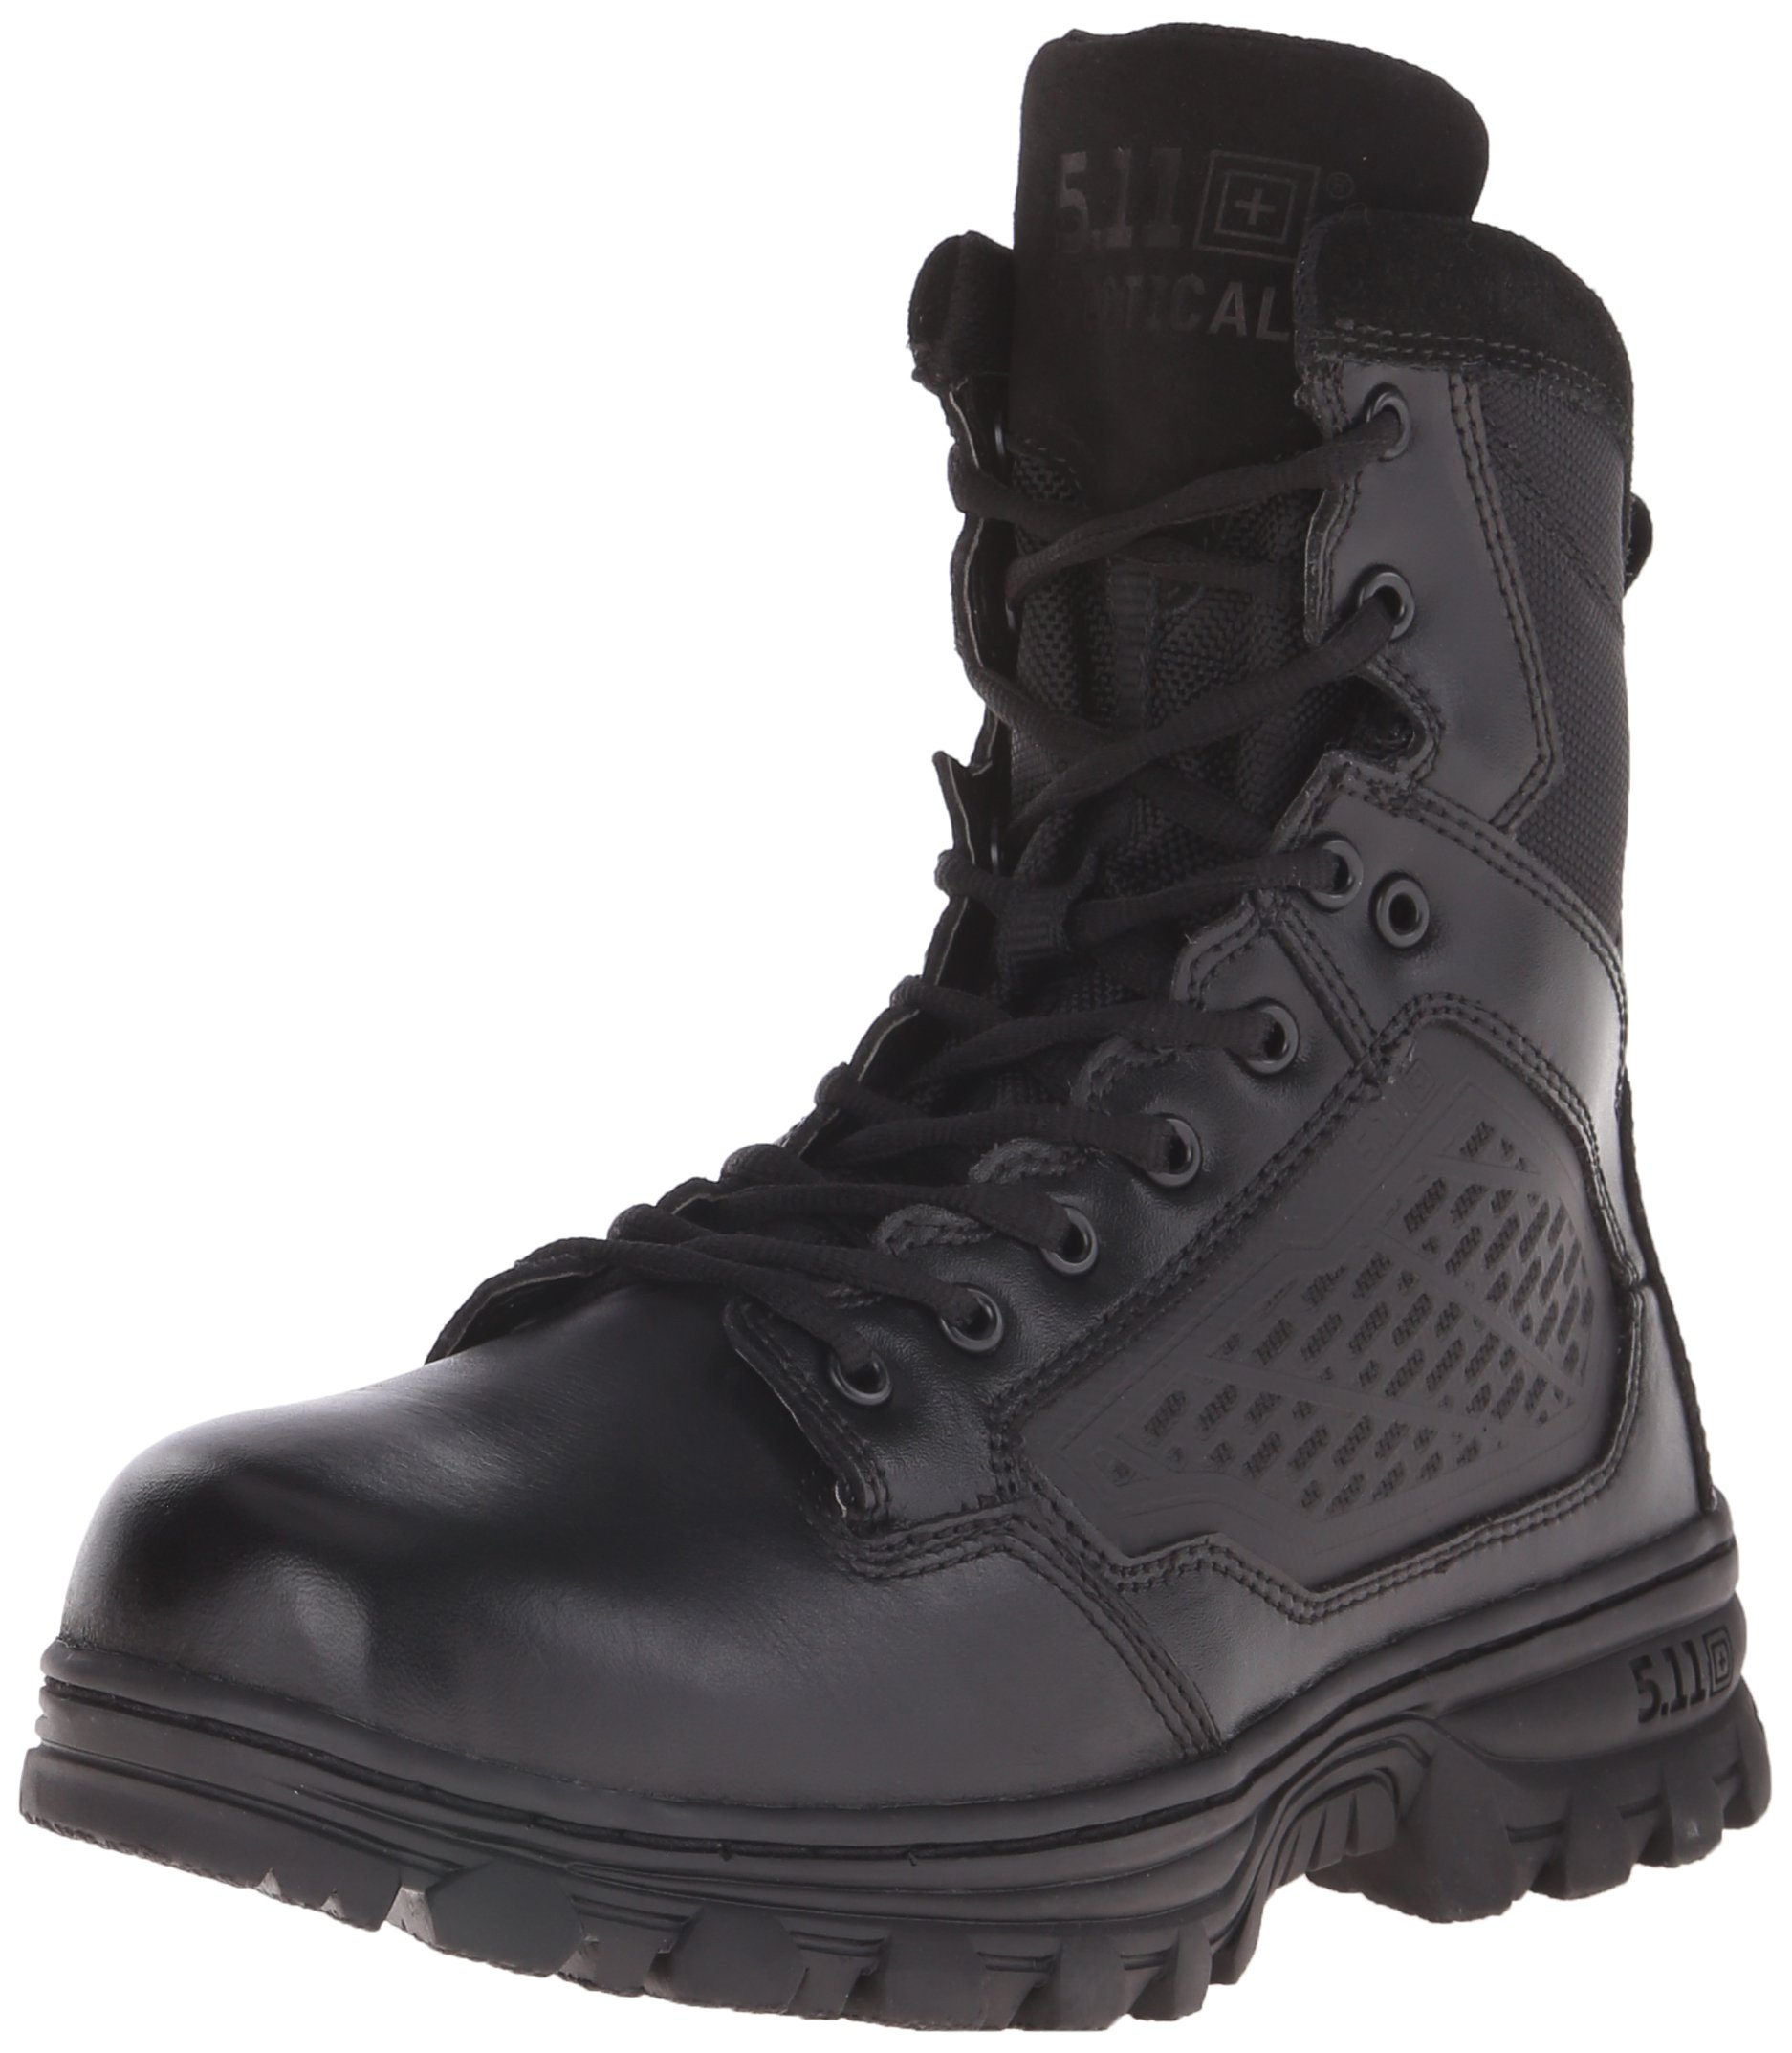 "5.11 Tactical Evo 6"" Boot With Sidezip"